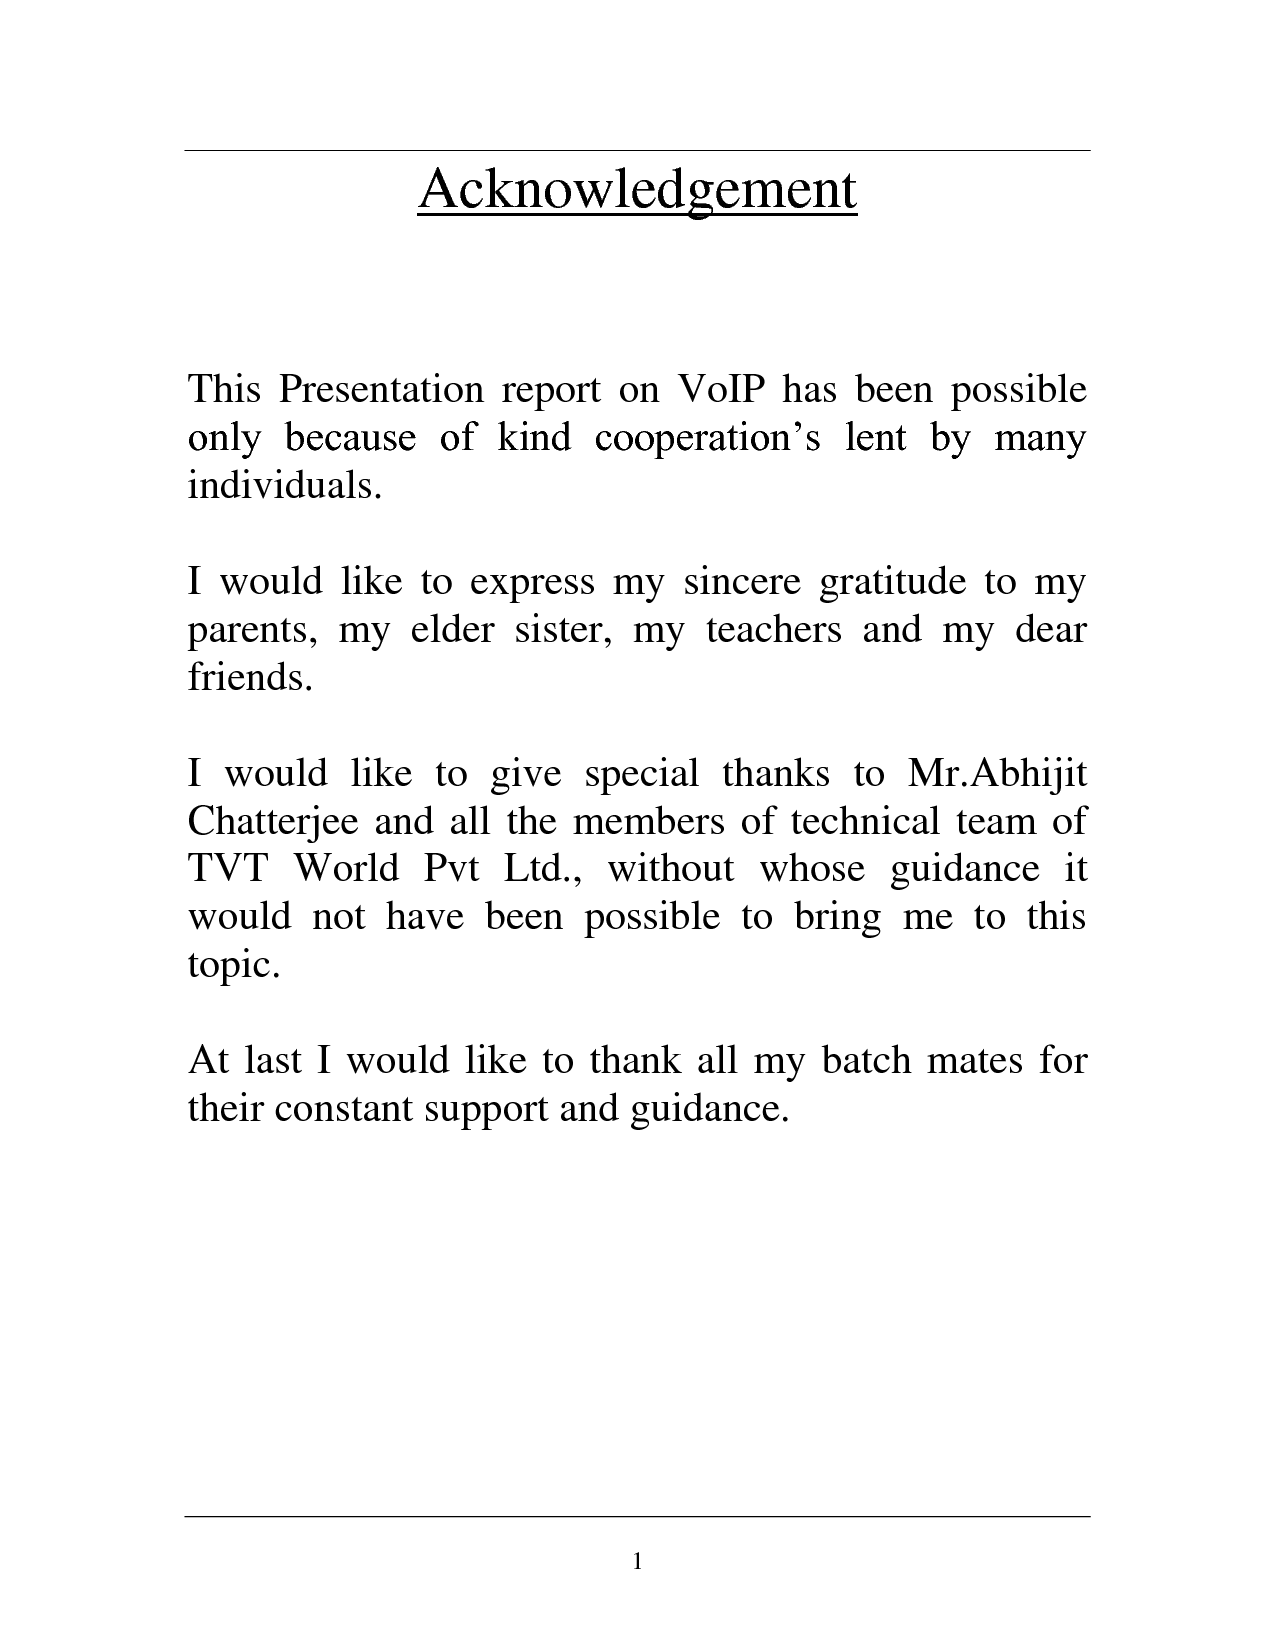 dissertation acknowlegements Acknowledgements i would like to thank to my phd advisors, professors harry gray and jack richards, for supporting me during these past five years.